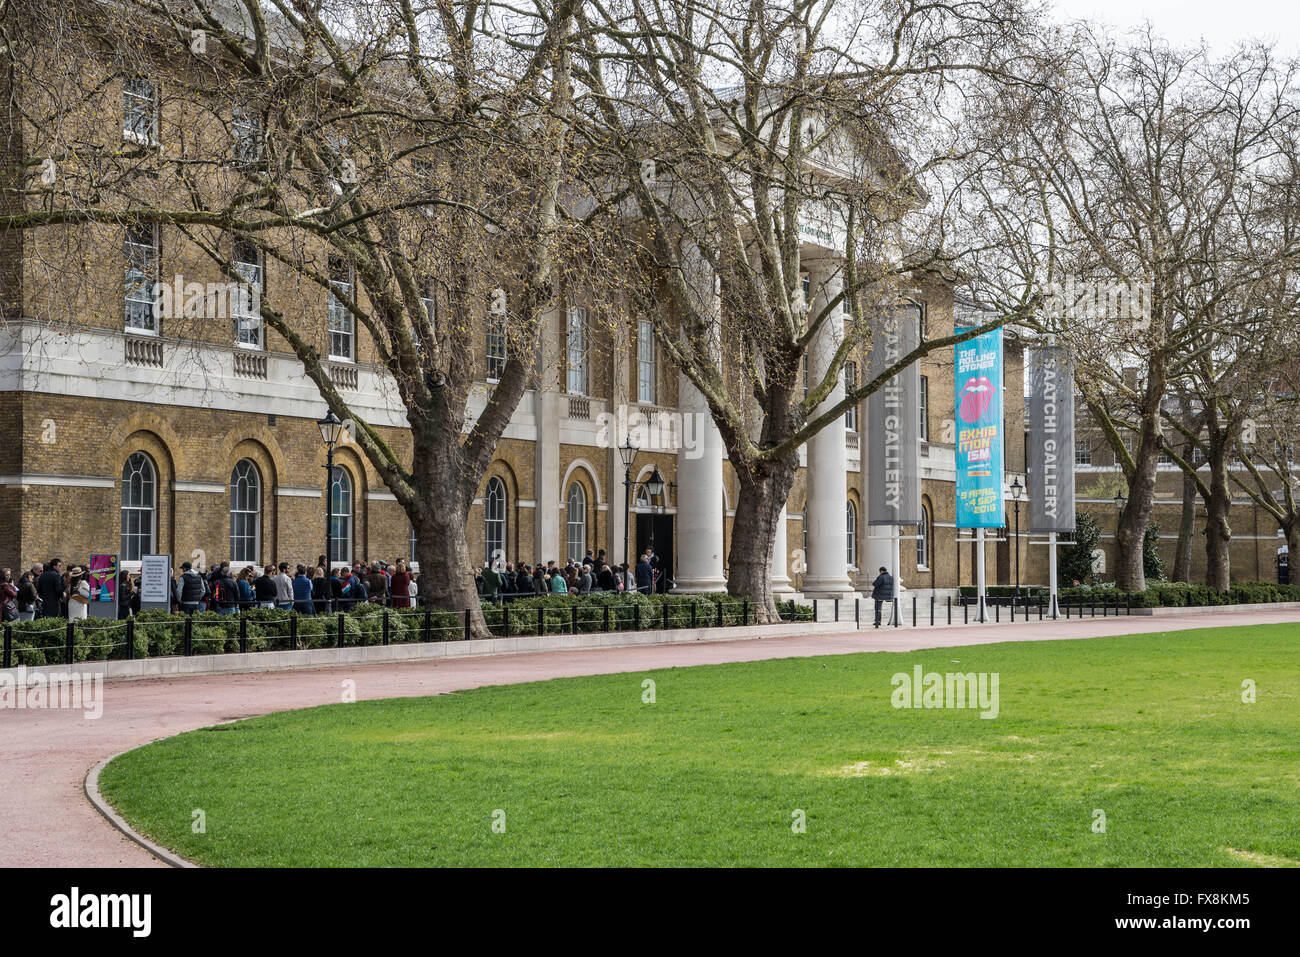 Visitors entering the Rolling Stones exhibition at the Saatchi Gallery, London - Stock Image